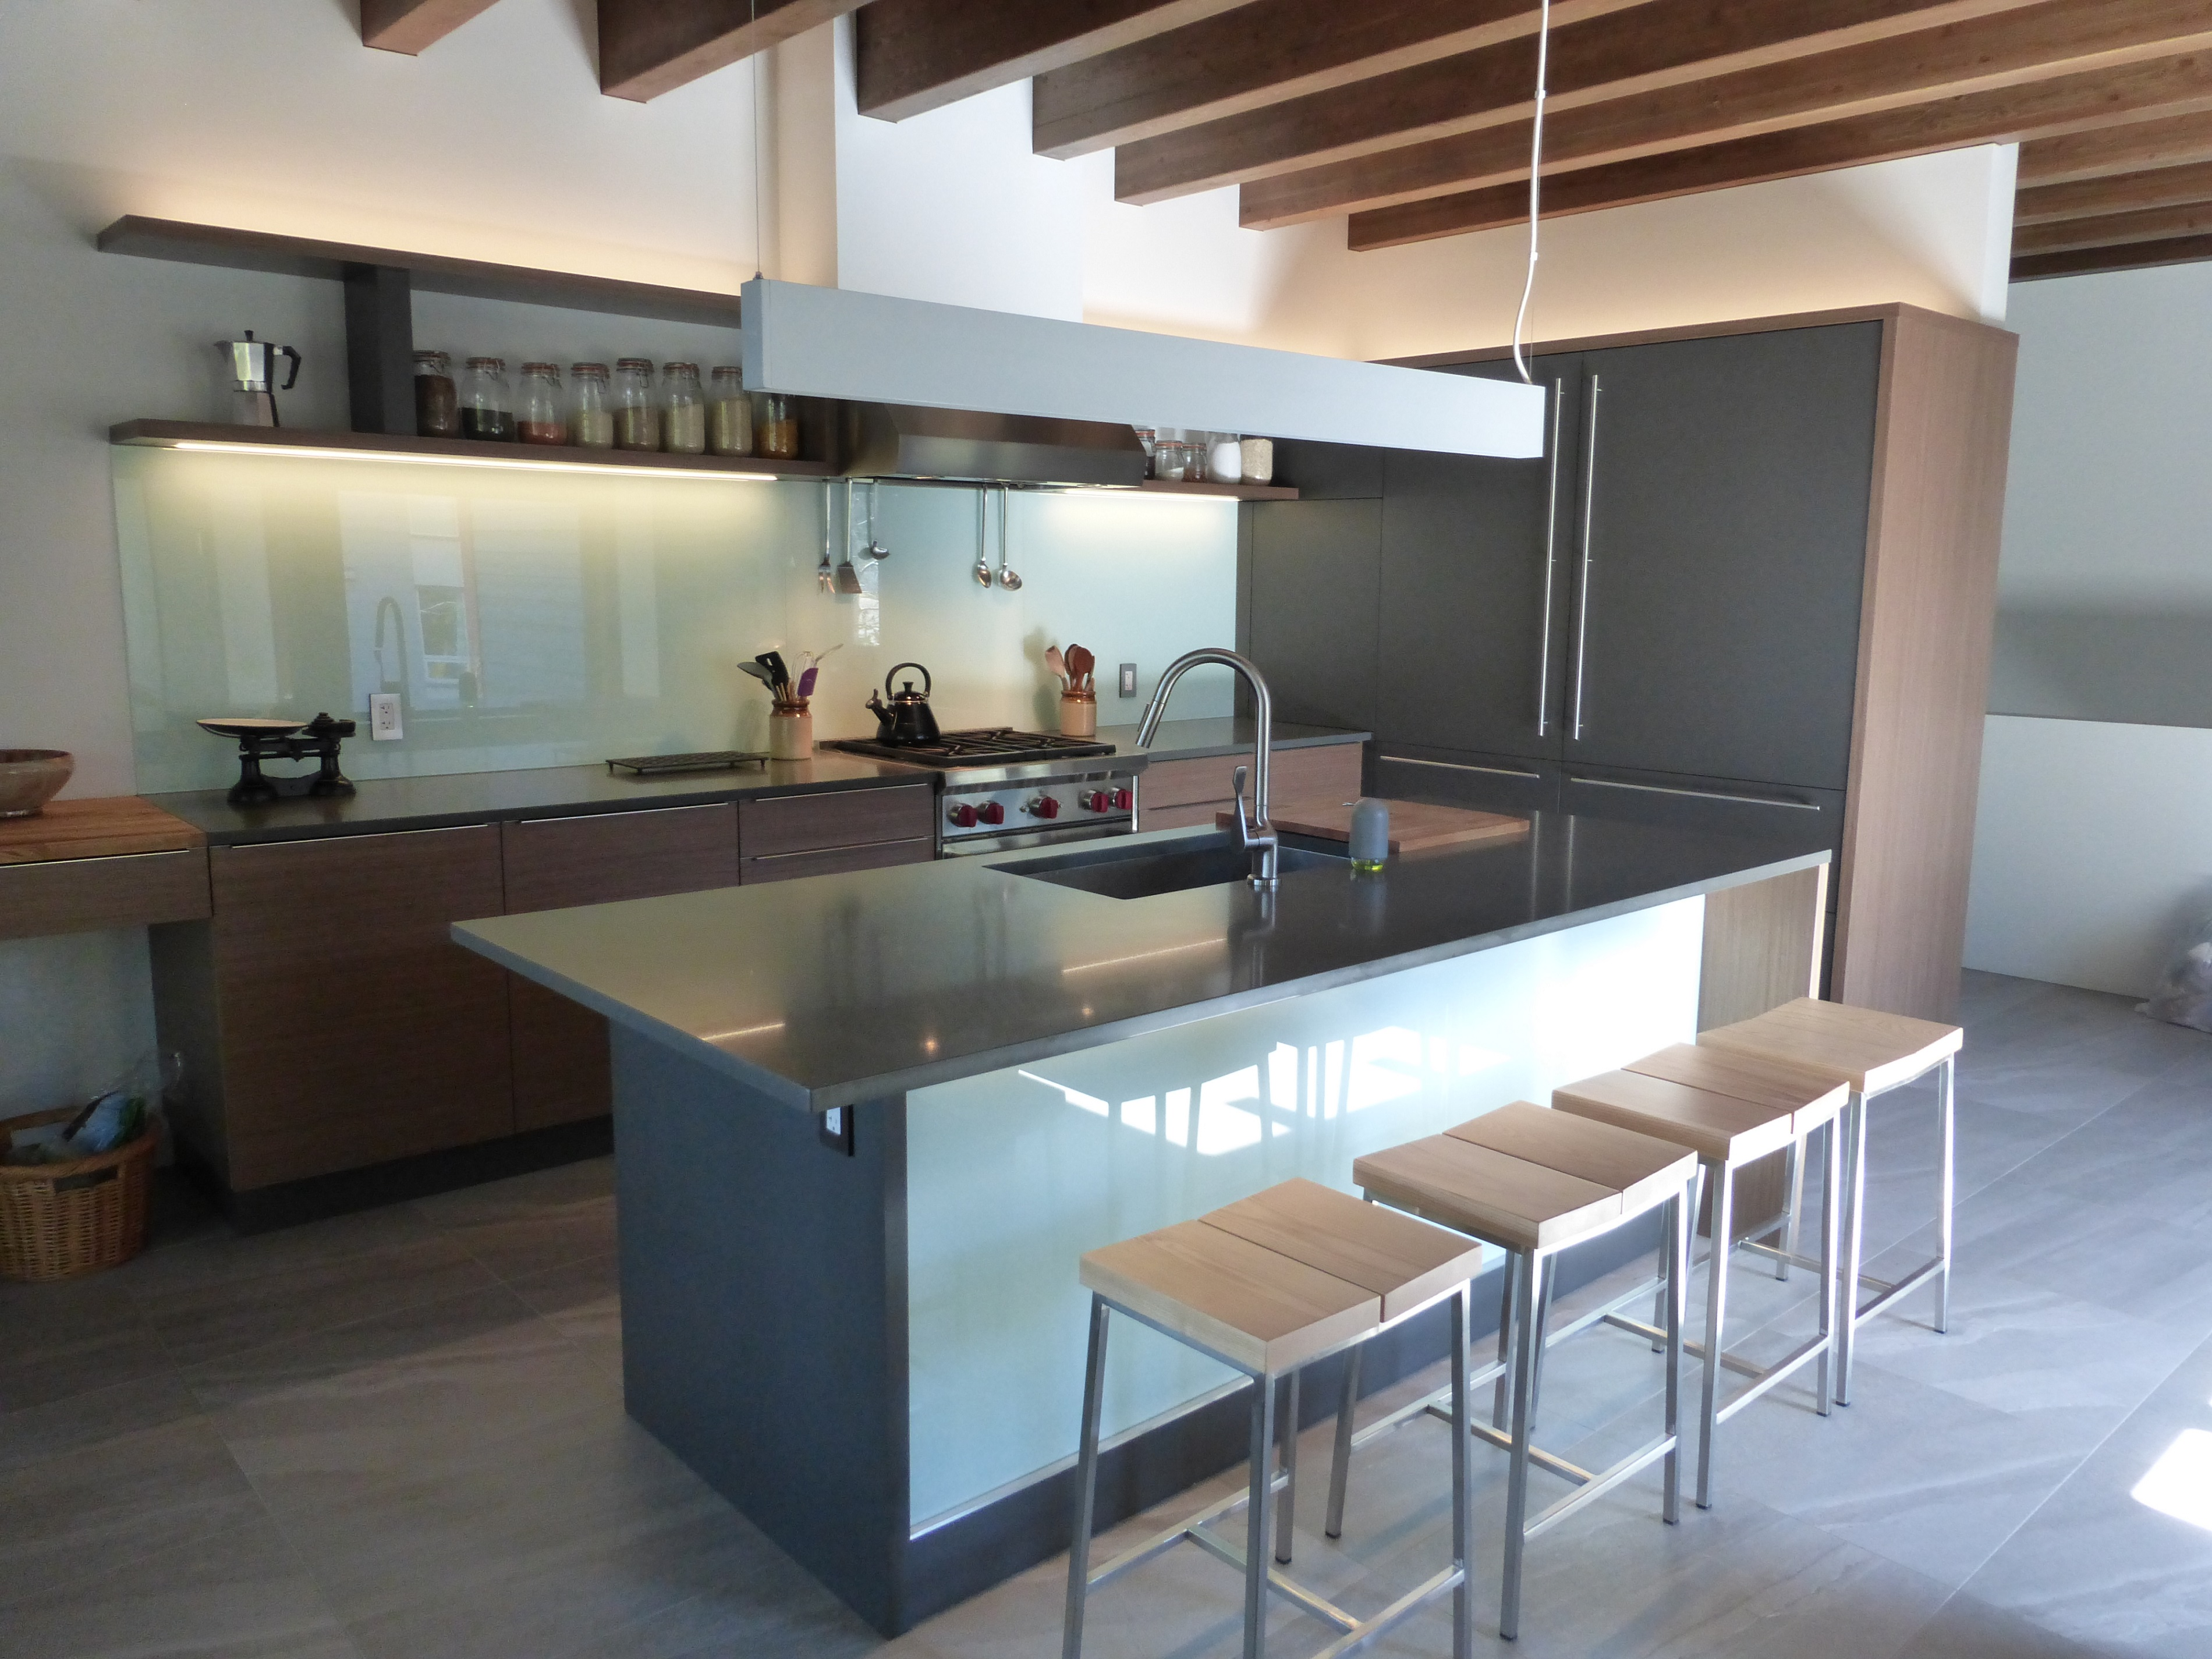 Cabinets r us showroom burnaby design merit kitchens cabinet previousnext solutioingenieria Image collections